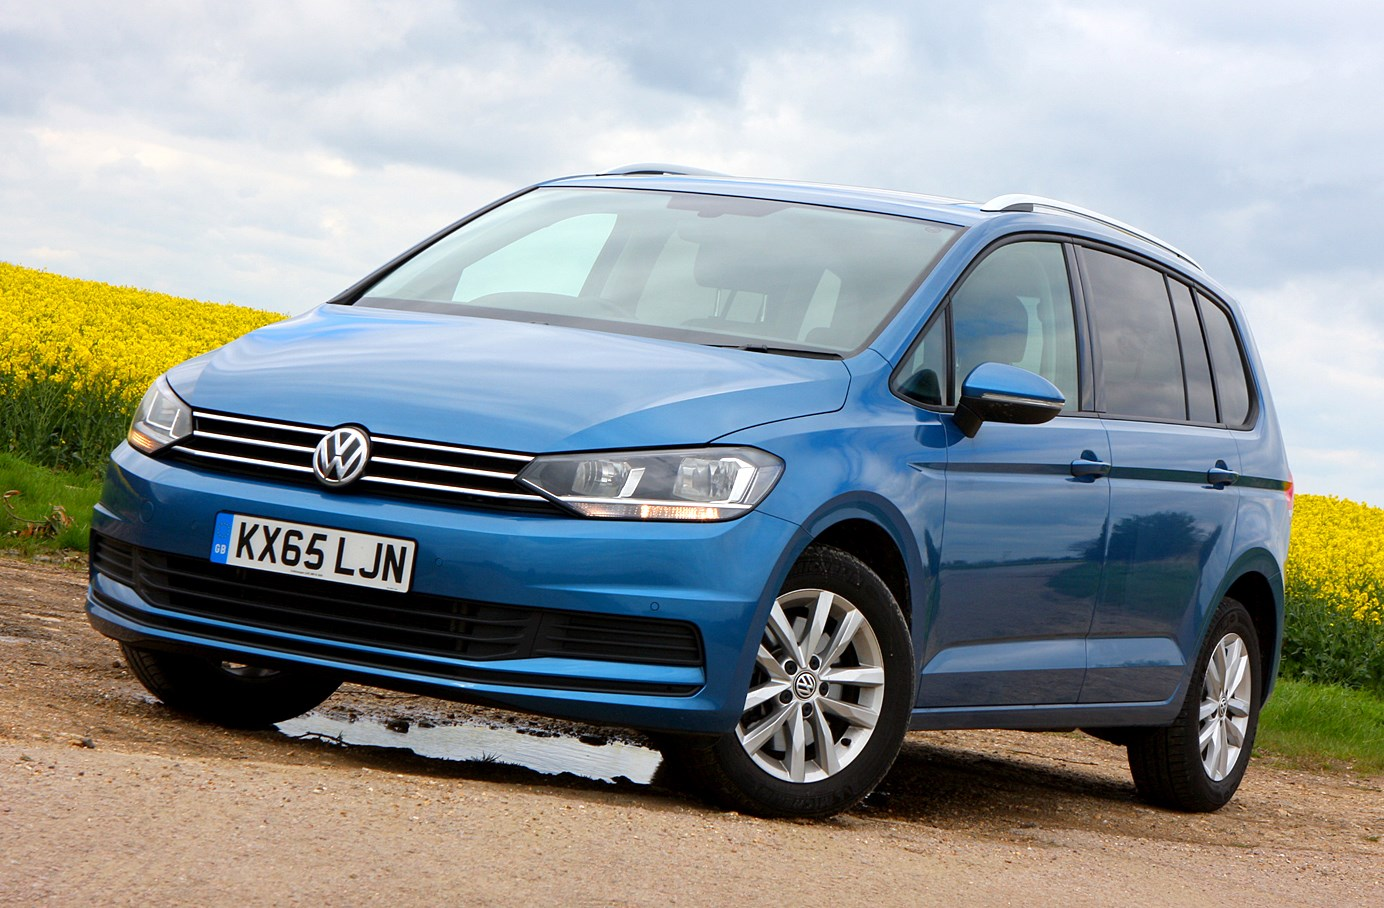 volkswagen touran estate 2015 photos parkers. Black Bedroom Furniture Sets. Home Design Ideas